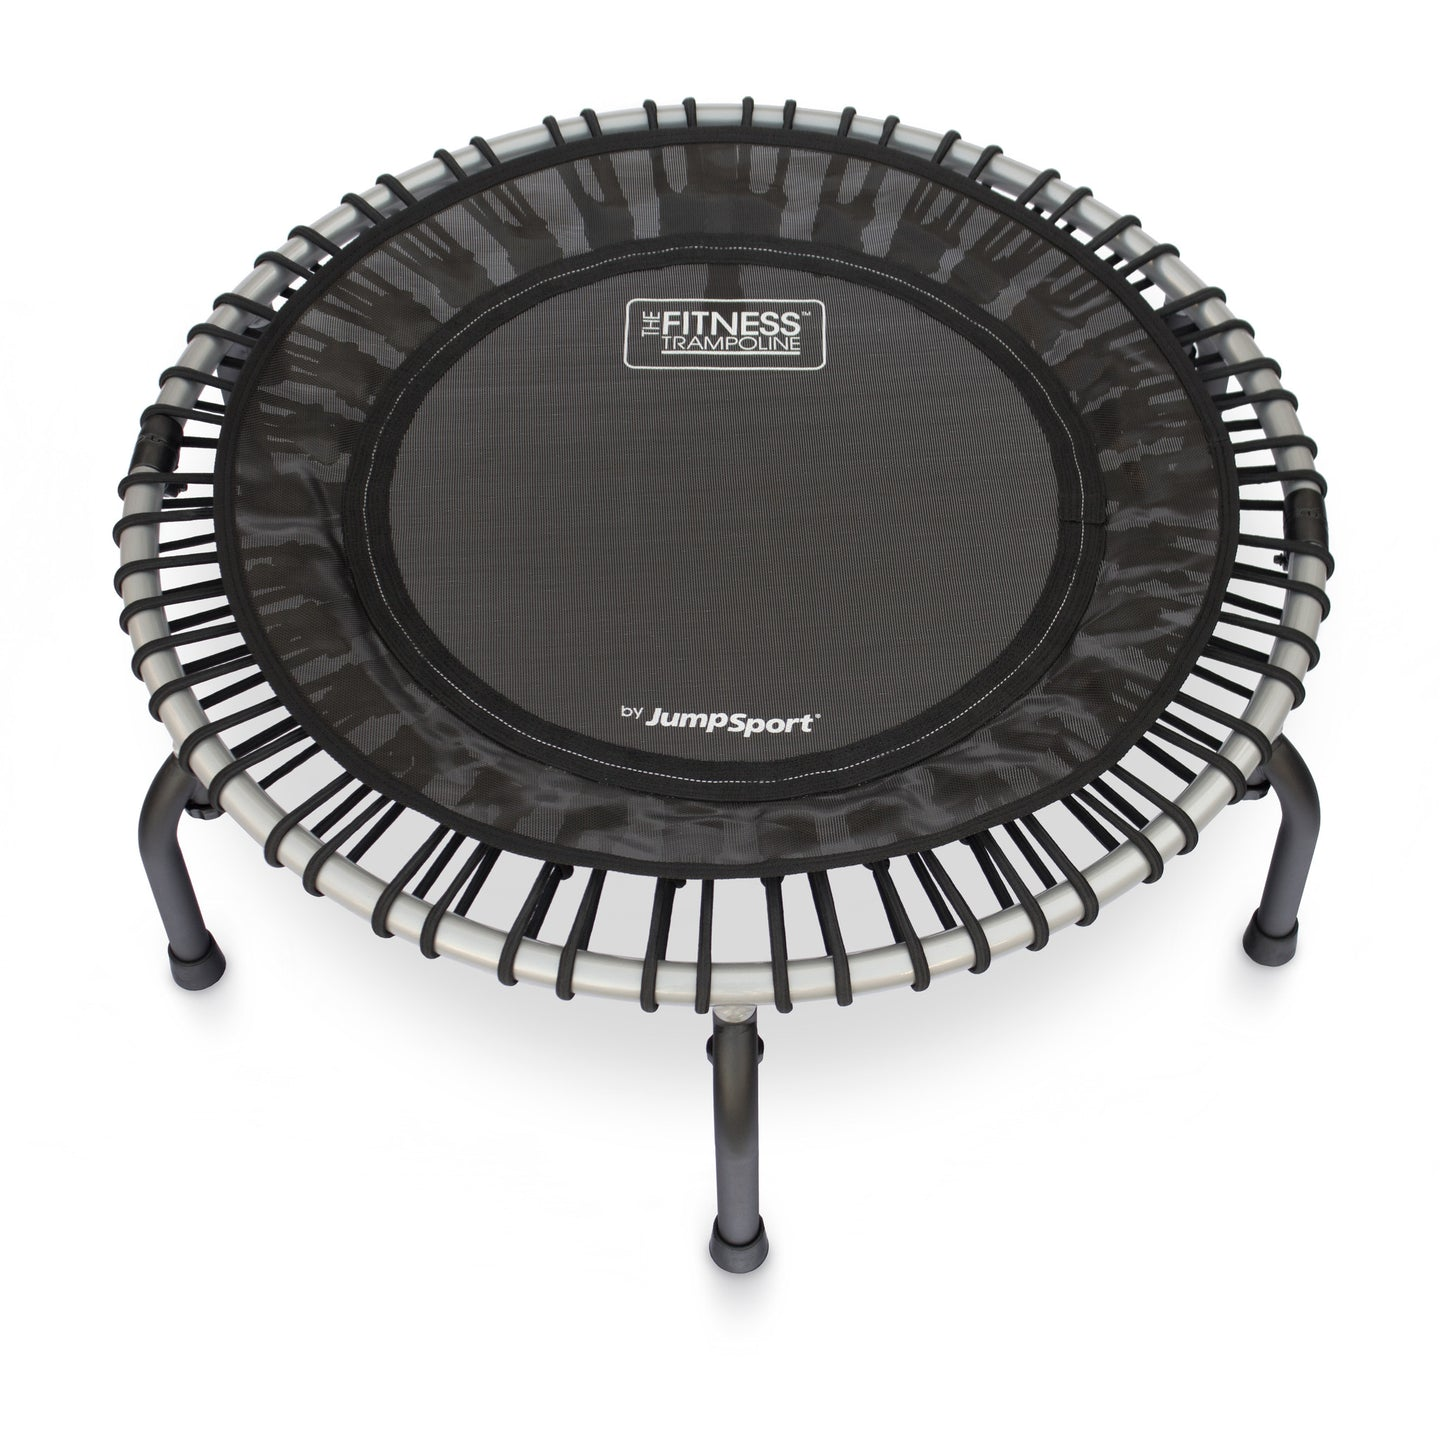 JumpSport Model 350F Fitness Trampoline